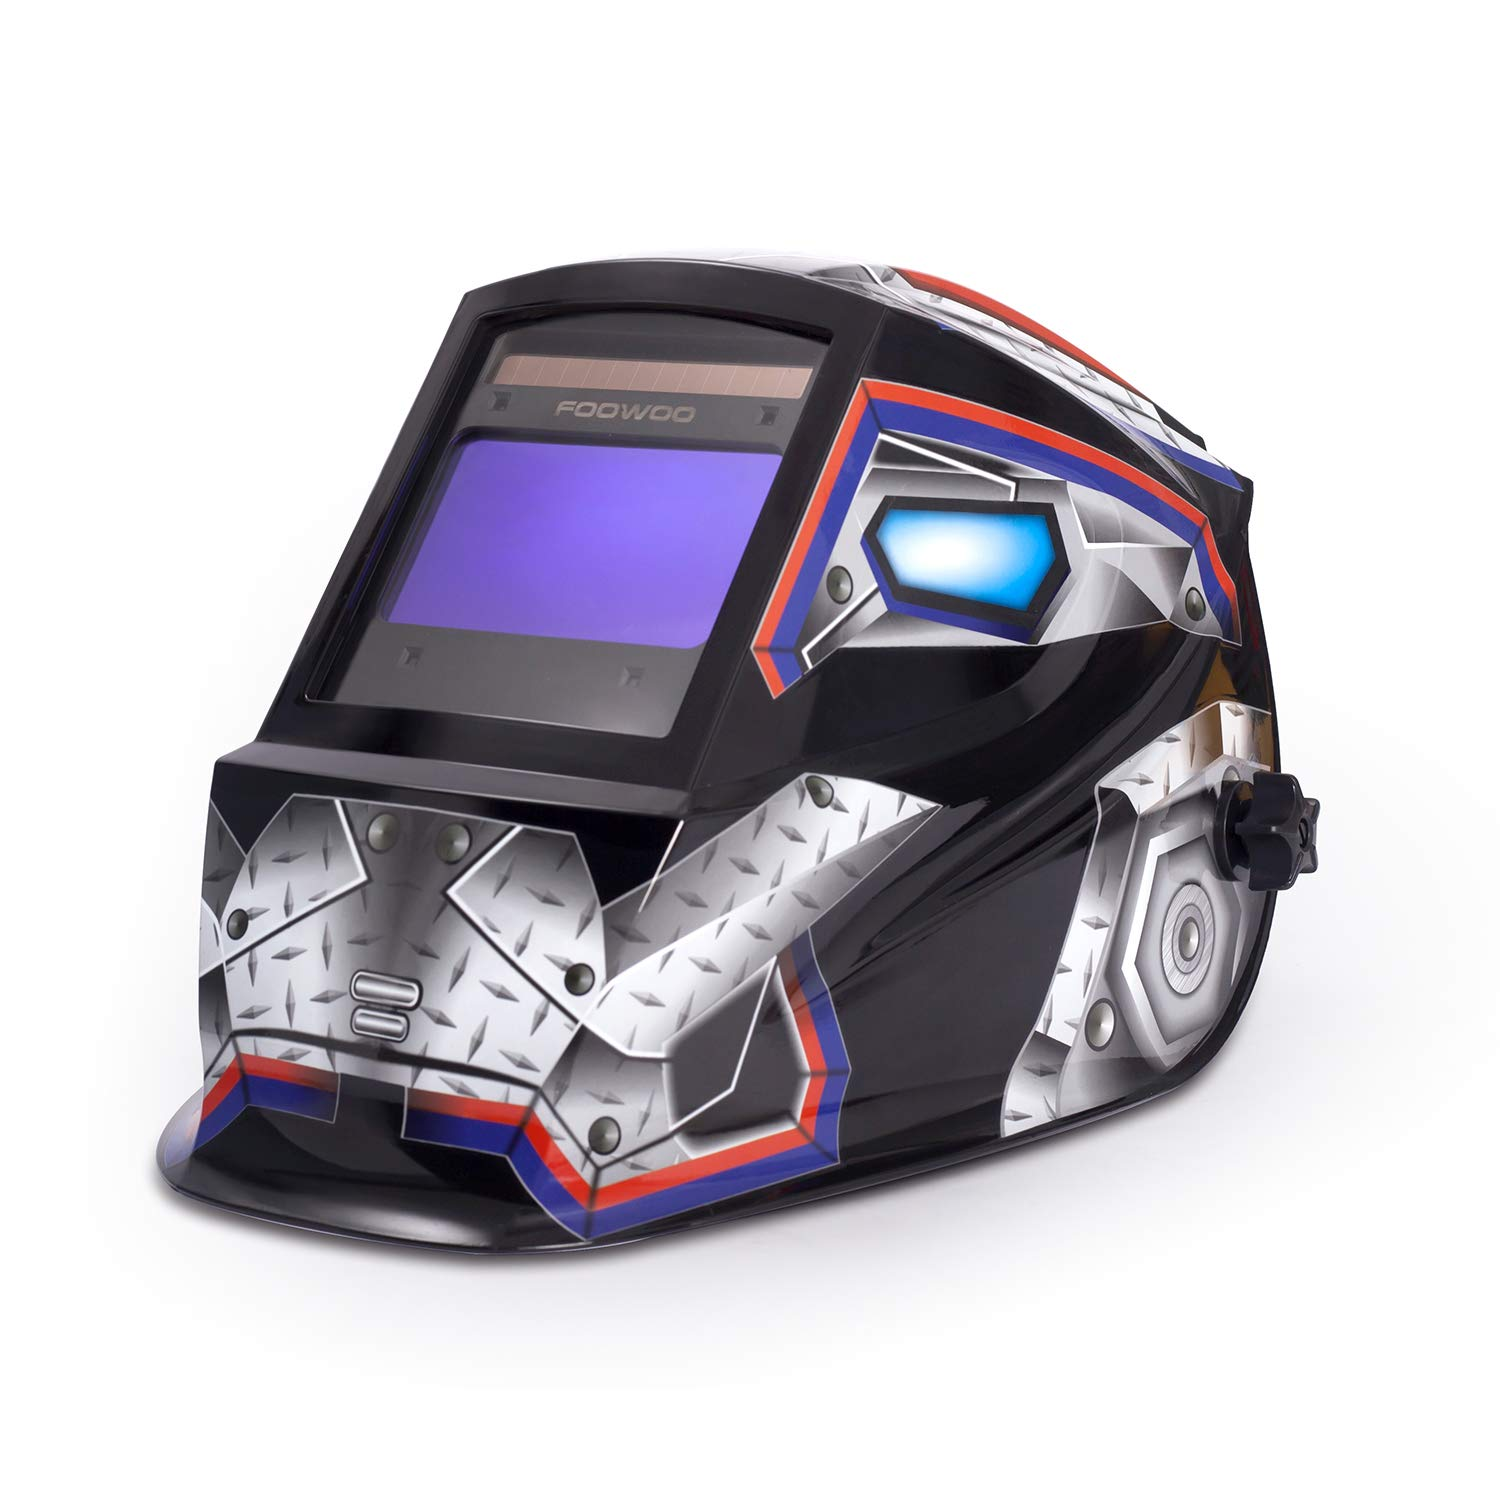 Large Viewing Screen 3.9''X2.4'' True Color Solar Power Auto Darkening Welding Helmet, 4 Arc Sensor Wide Shade 4/5-9/9-13 for TIG MIG Arc Weld Grinding Welder Mask Robot Design by Foowoo